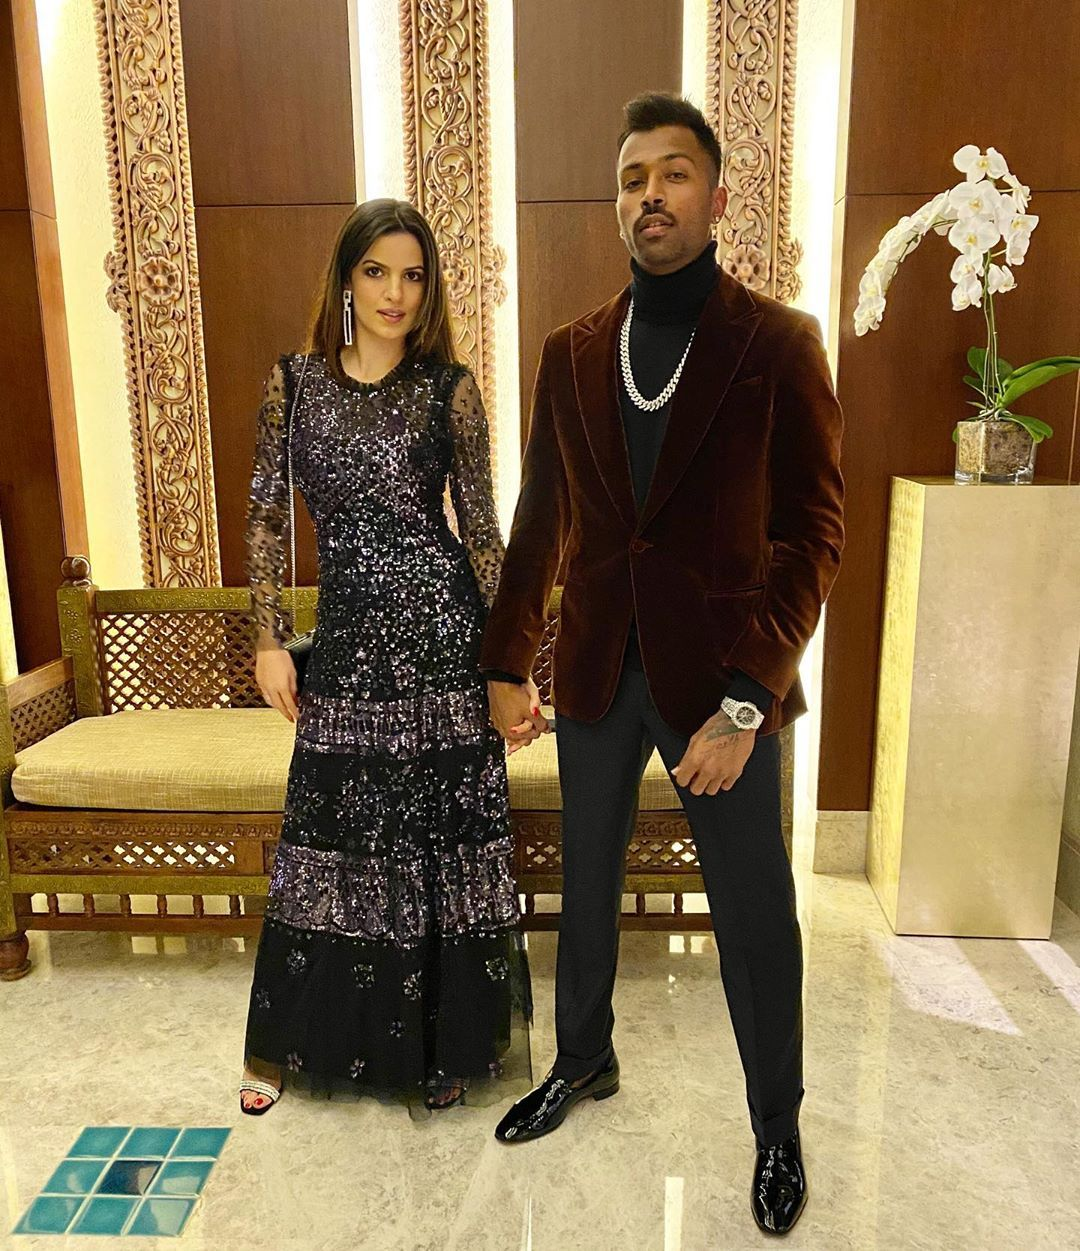 Pin By Gossip On My Cocktail In 2020 Hardik Pandya Girlfriend Bollywood Celebrities Bollywood Gossip